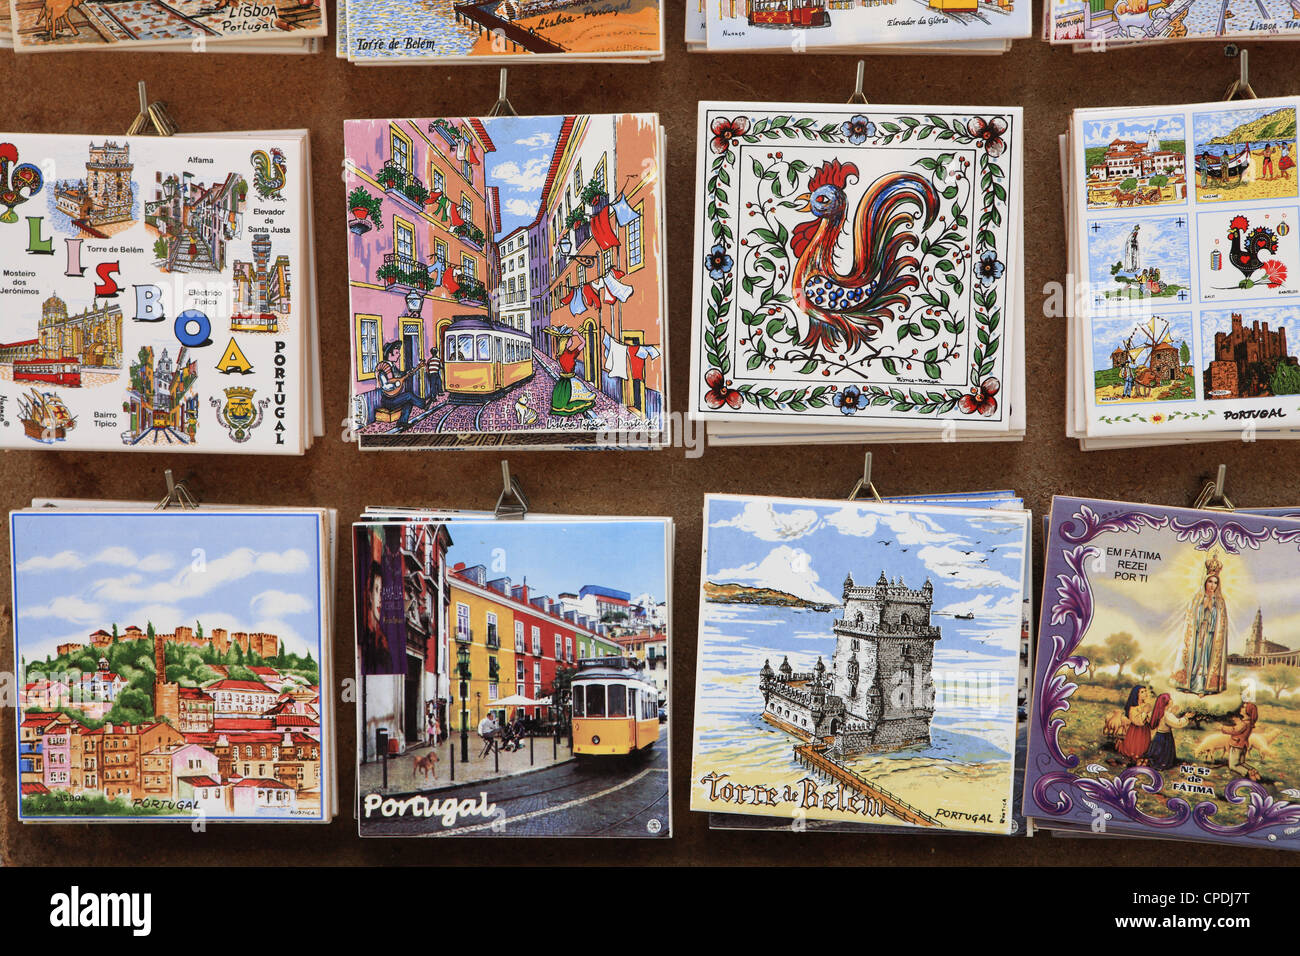 Souvenir tiles in shop display, Lisbon, Portugal, Europe - Stock Image